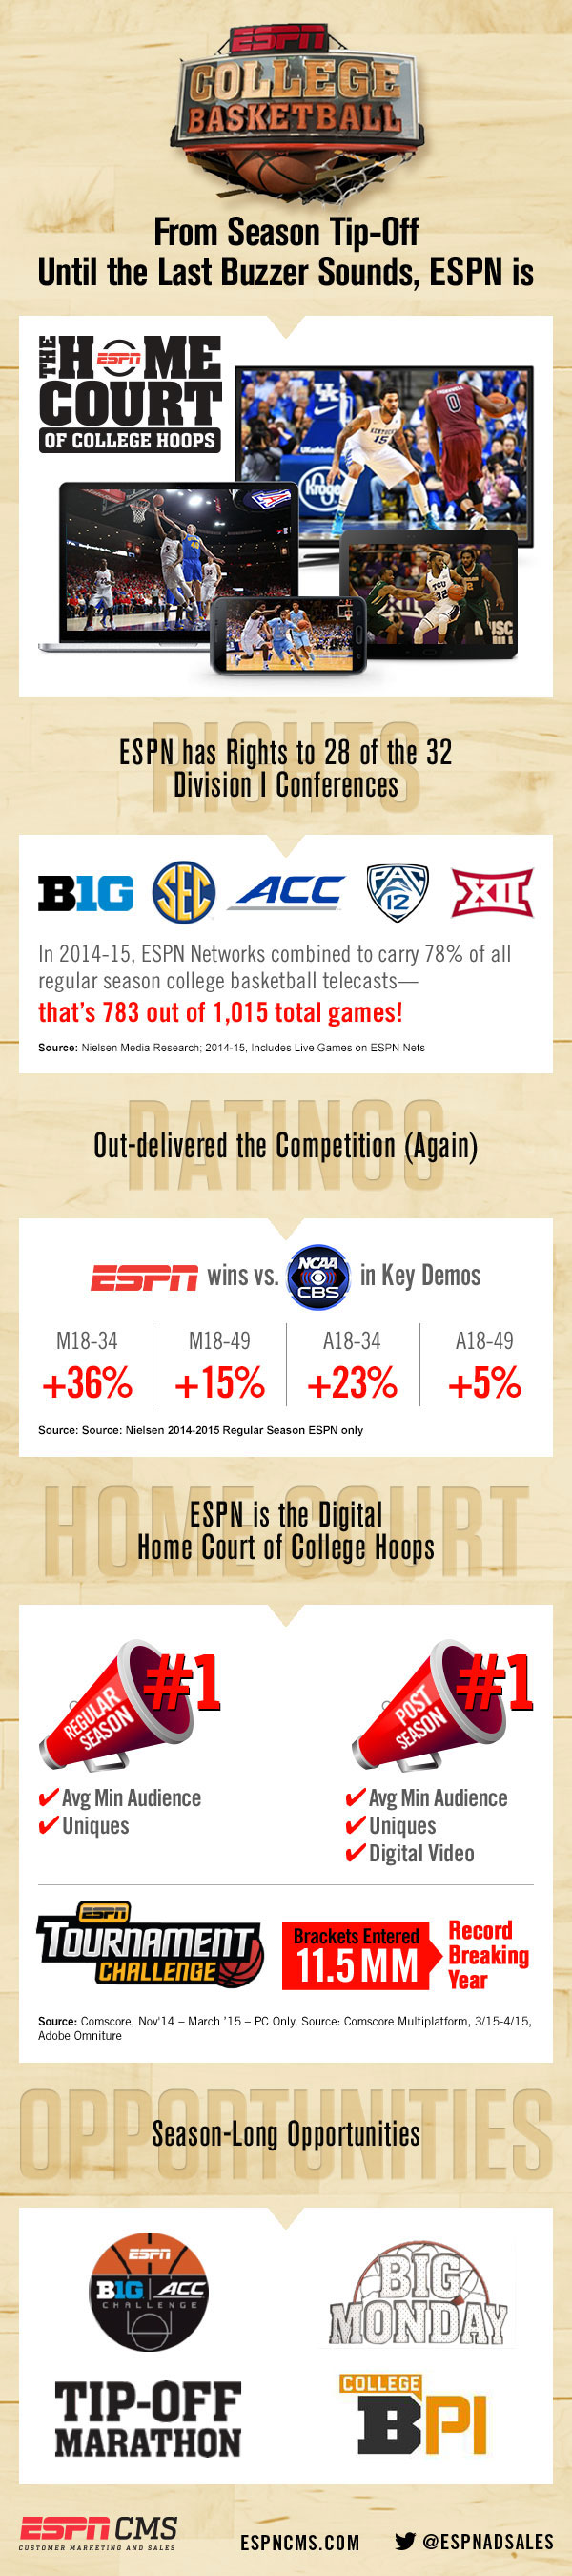 ESPNCMS Stream - ESPN is The Home Court of College Hoops